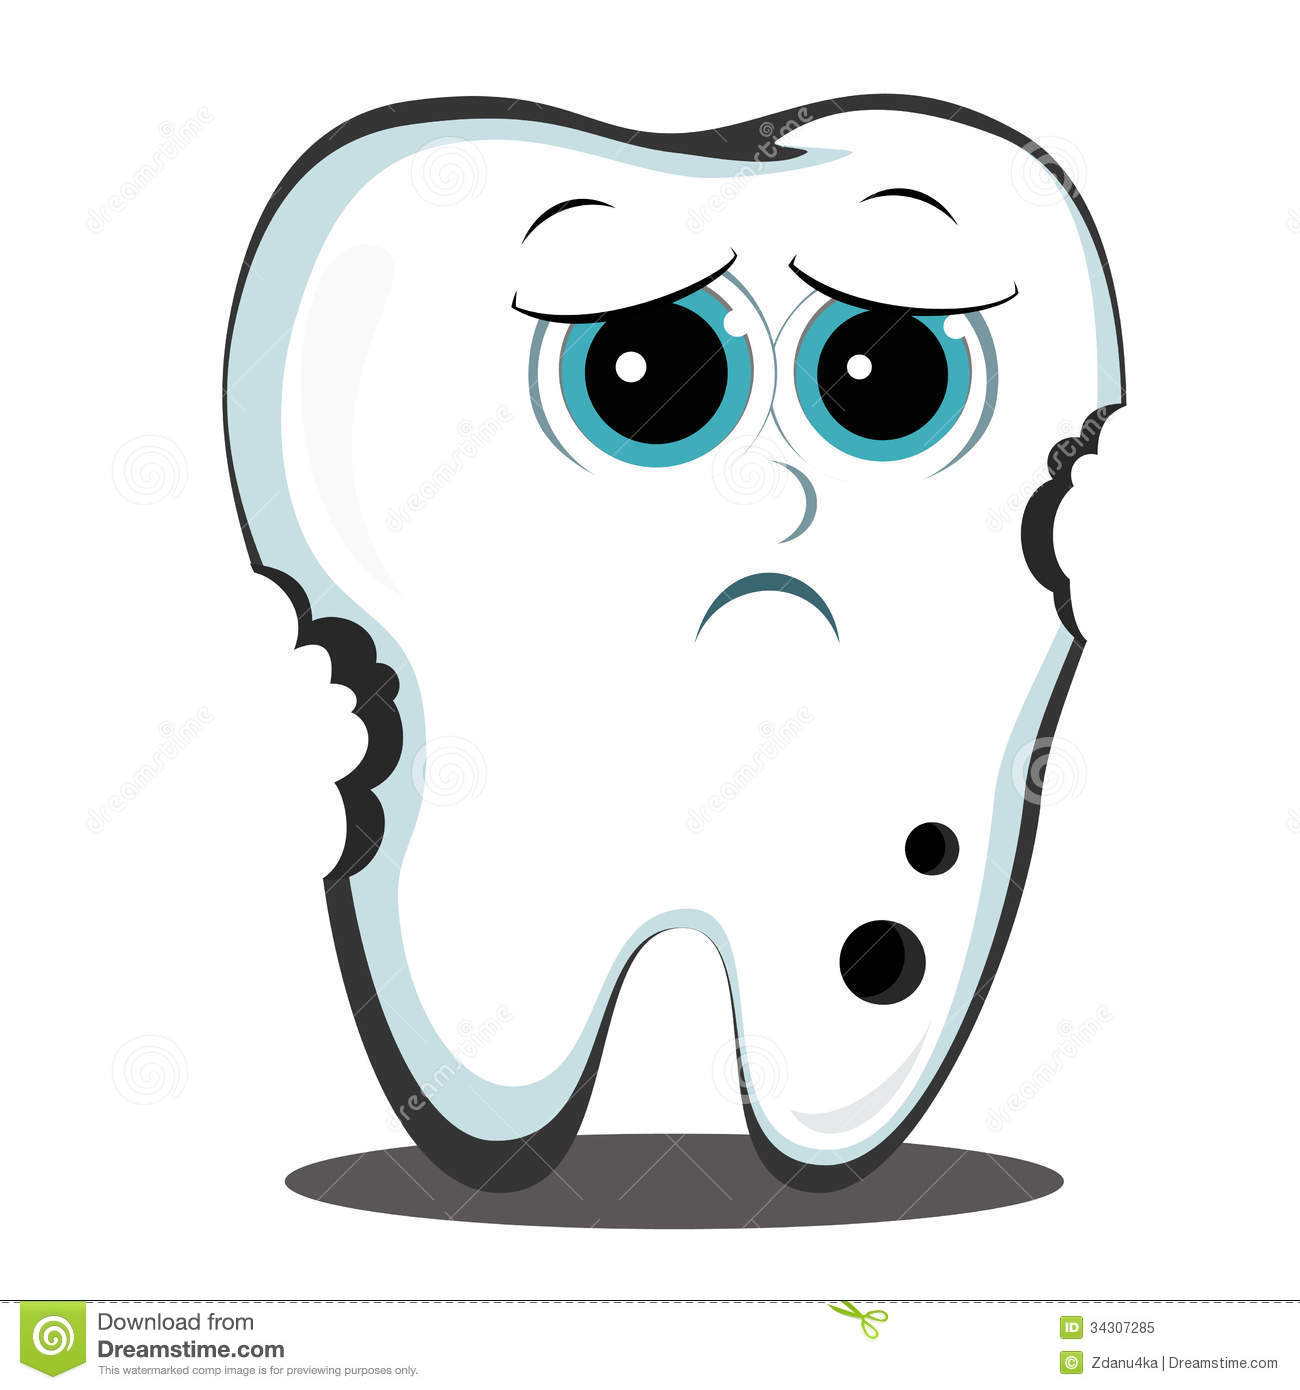 Teeth clipart hurt Sad cliparts Tooth Clipart Tooth